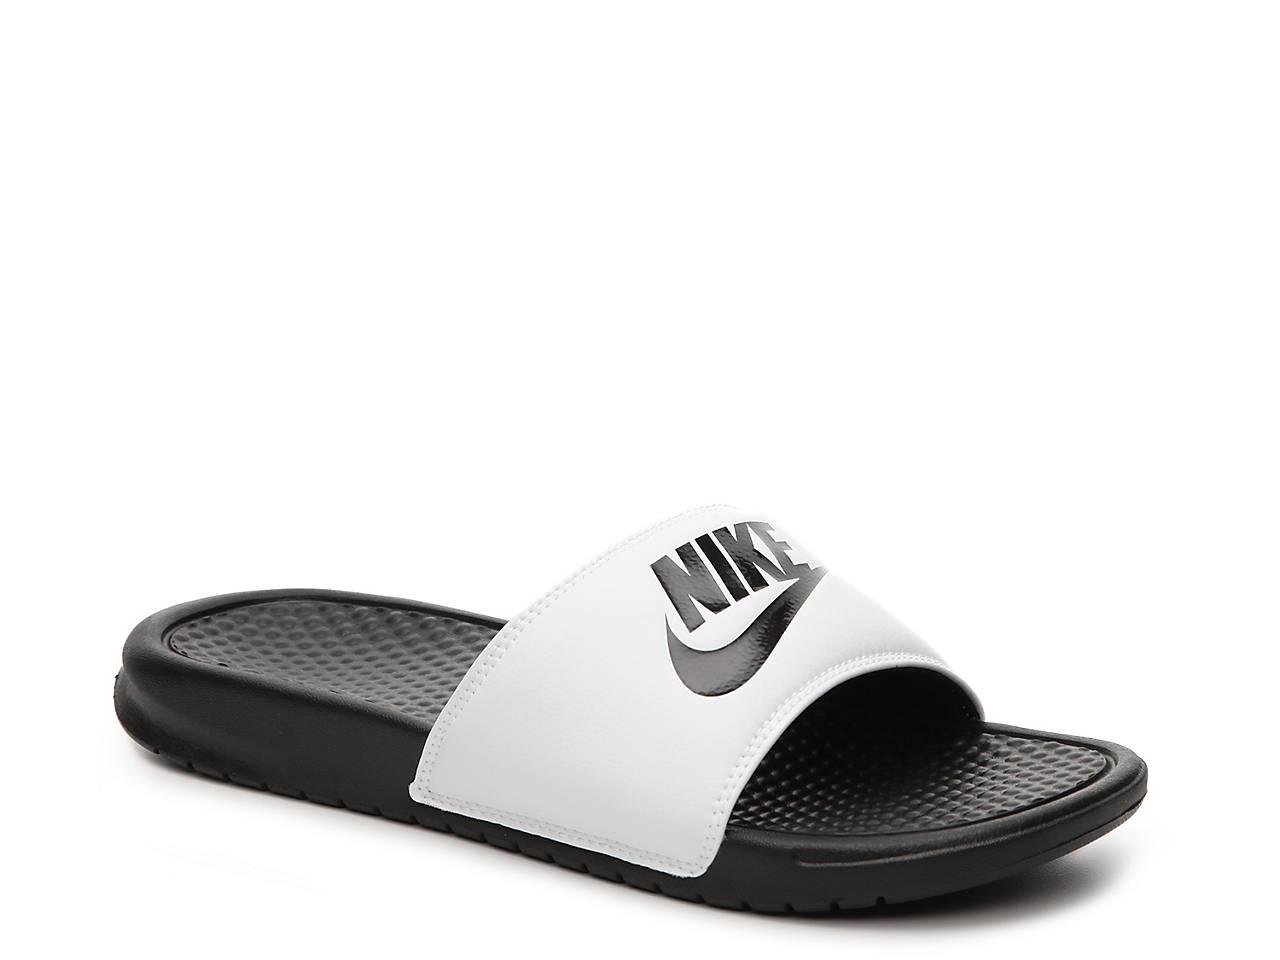 8fb3adcbe Nike Benassi Just Do It Slide Sandal - Men s Men s Shoes